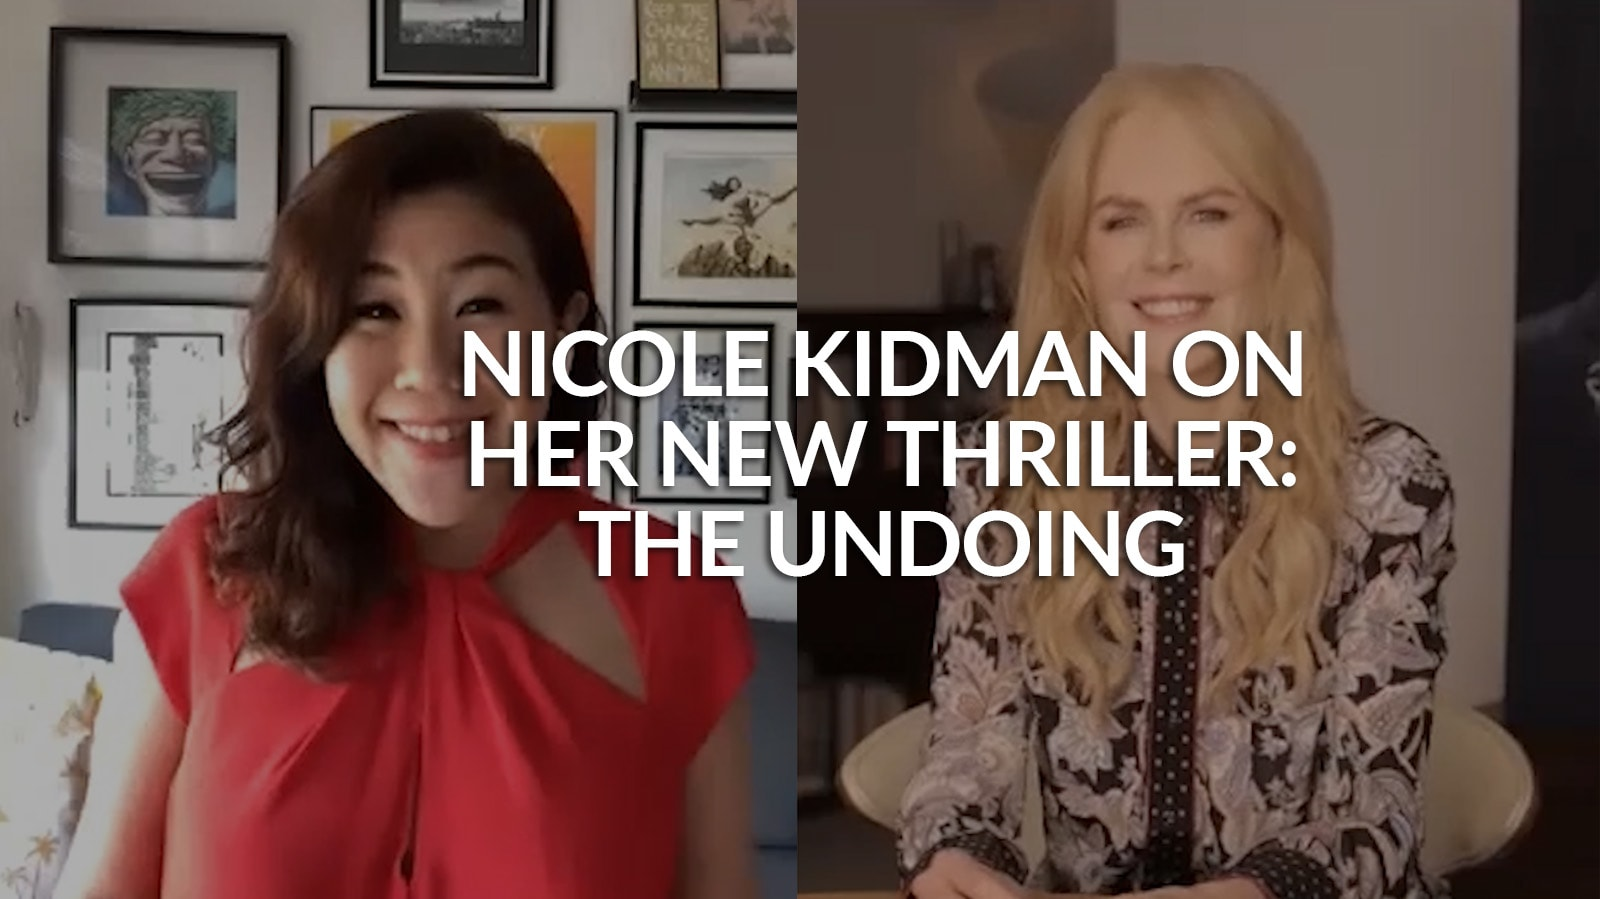 Nicole Kidman's Singapore connection and new thriller The Undoing | CNA Lifestyle